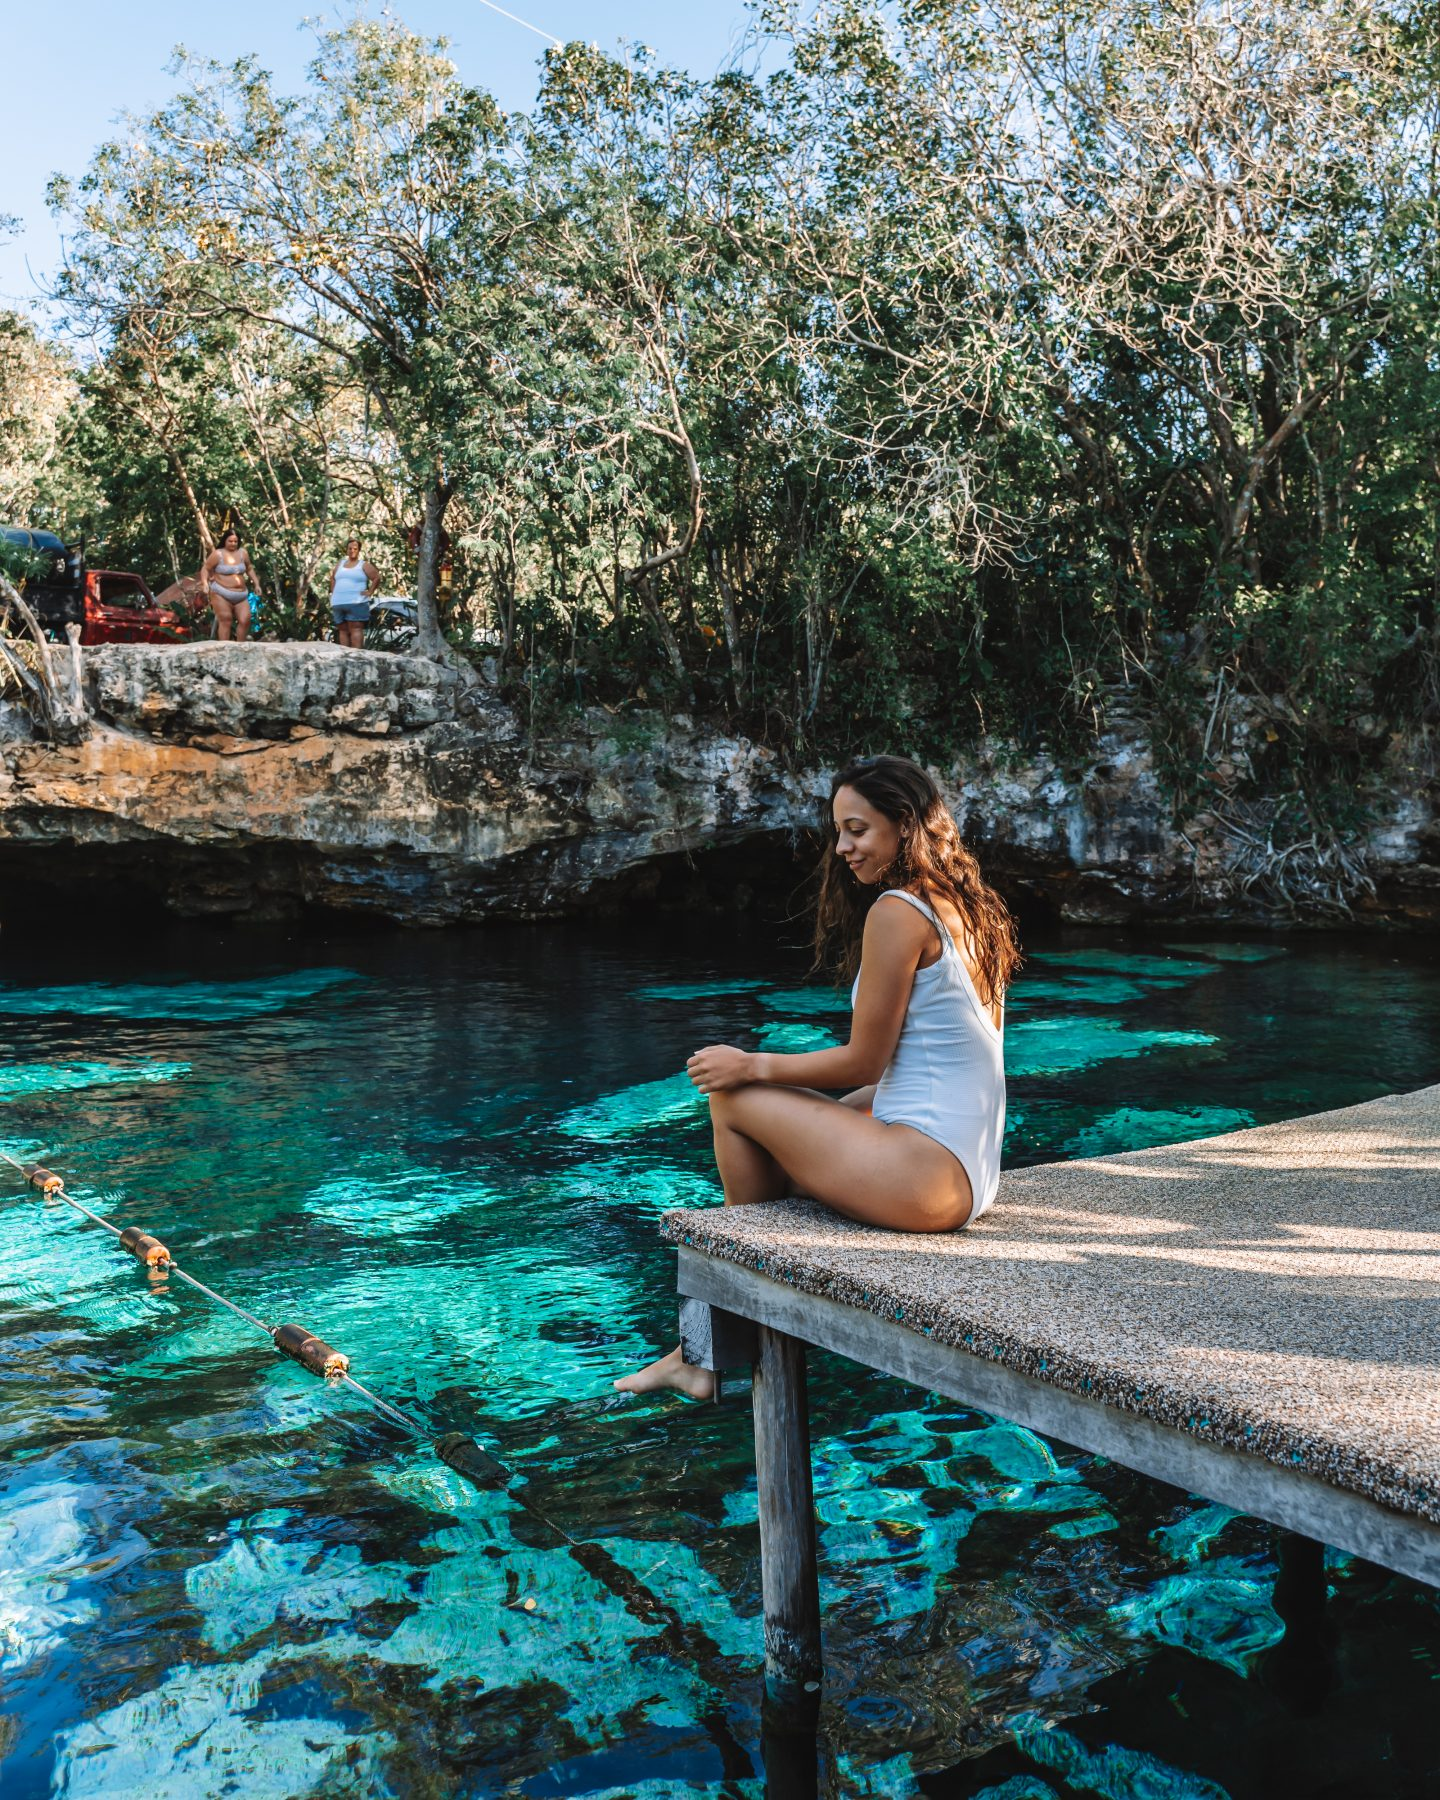 girl on platform overlooking clear cenote water